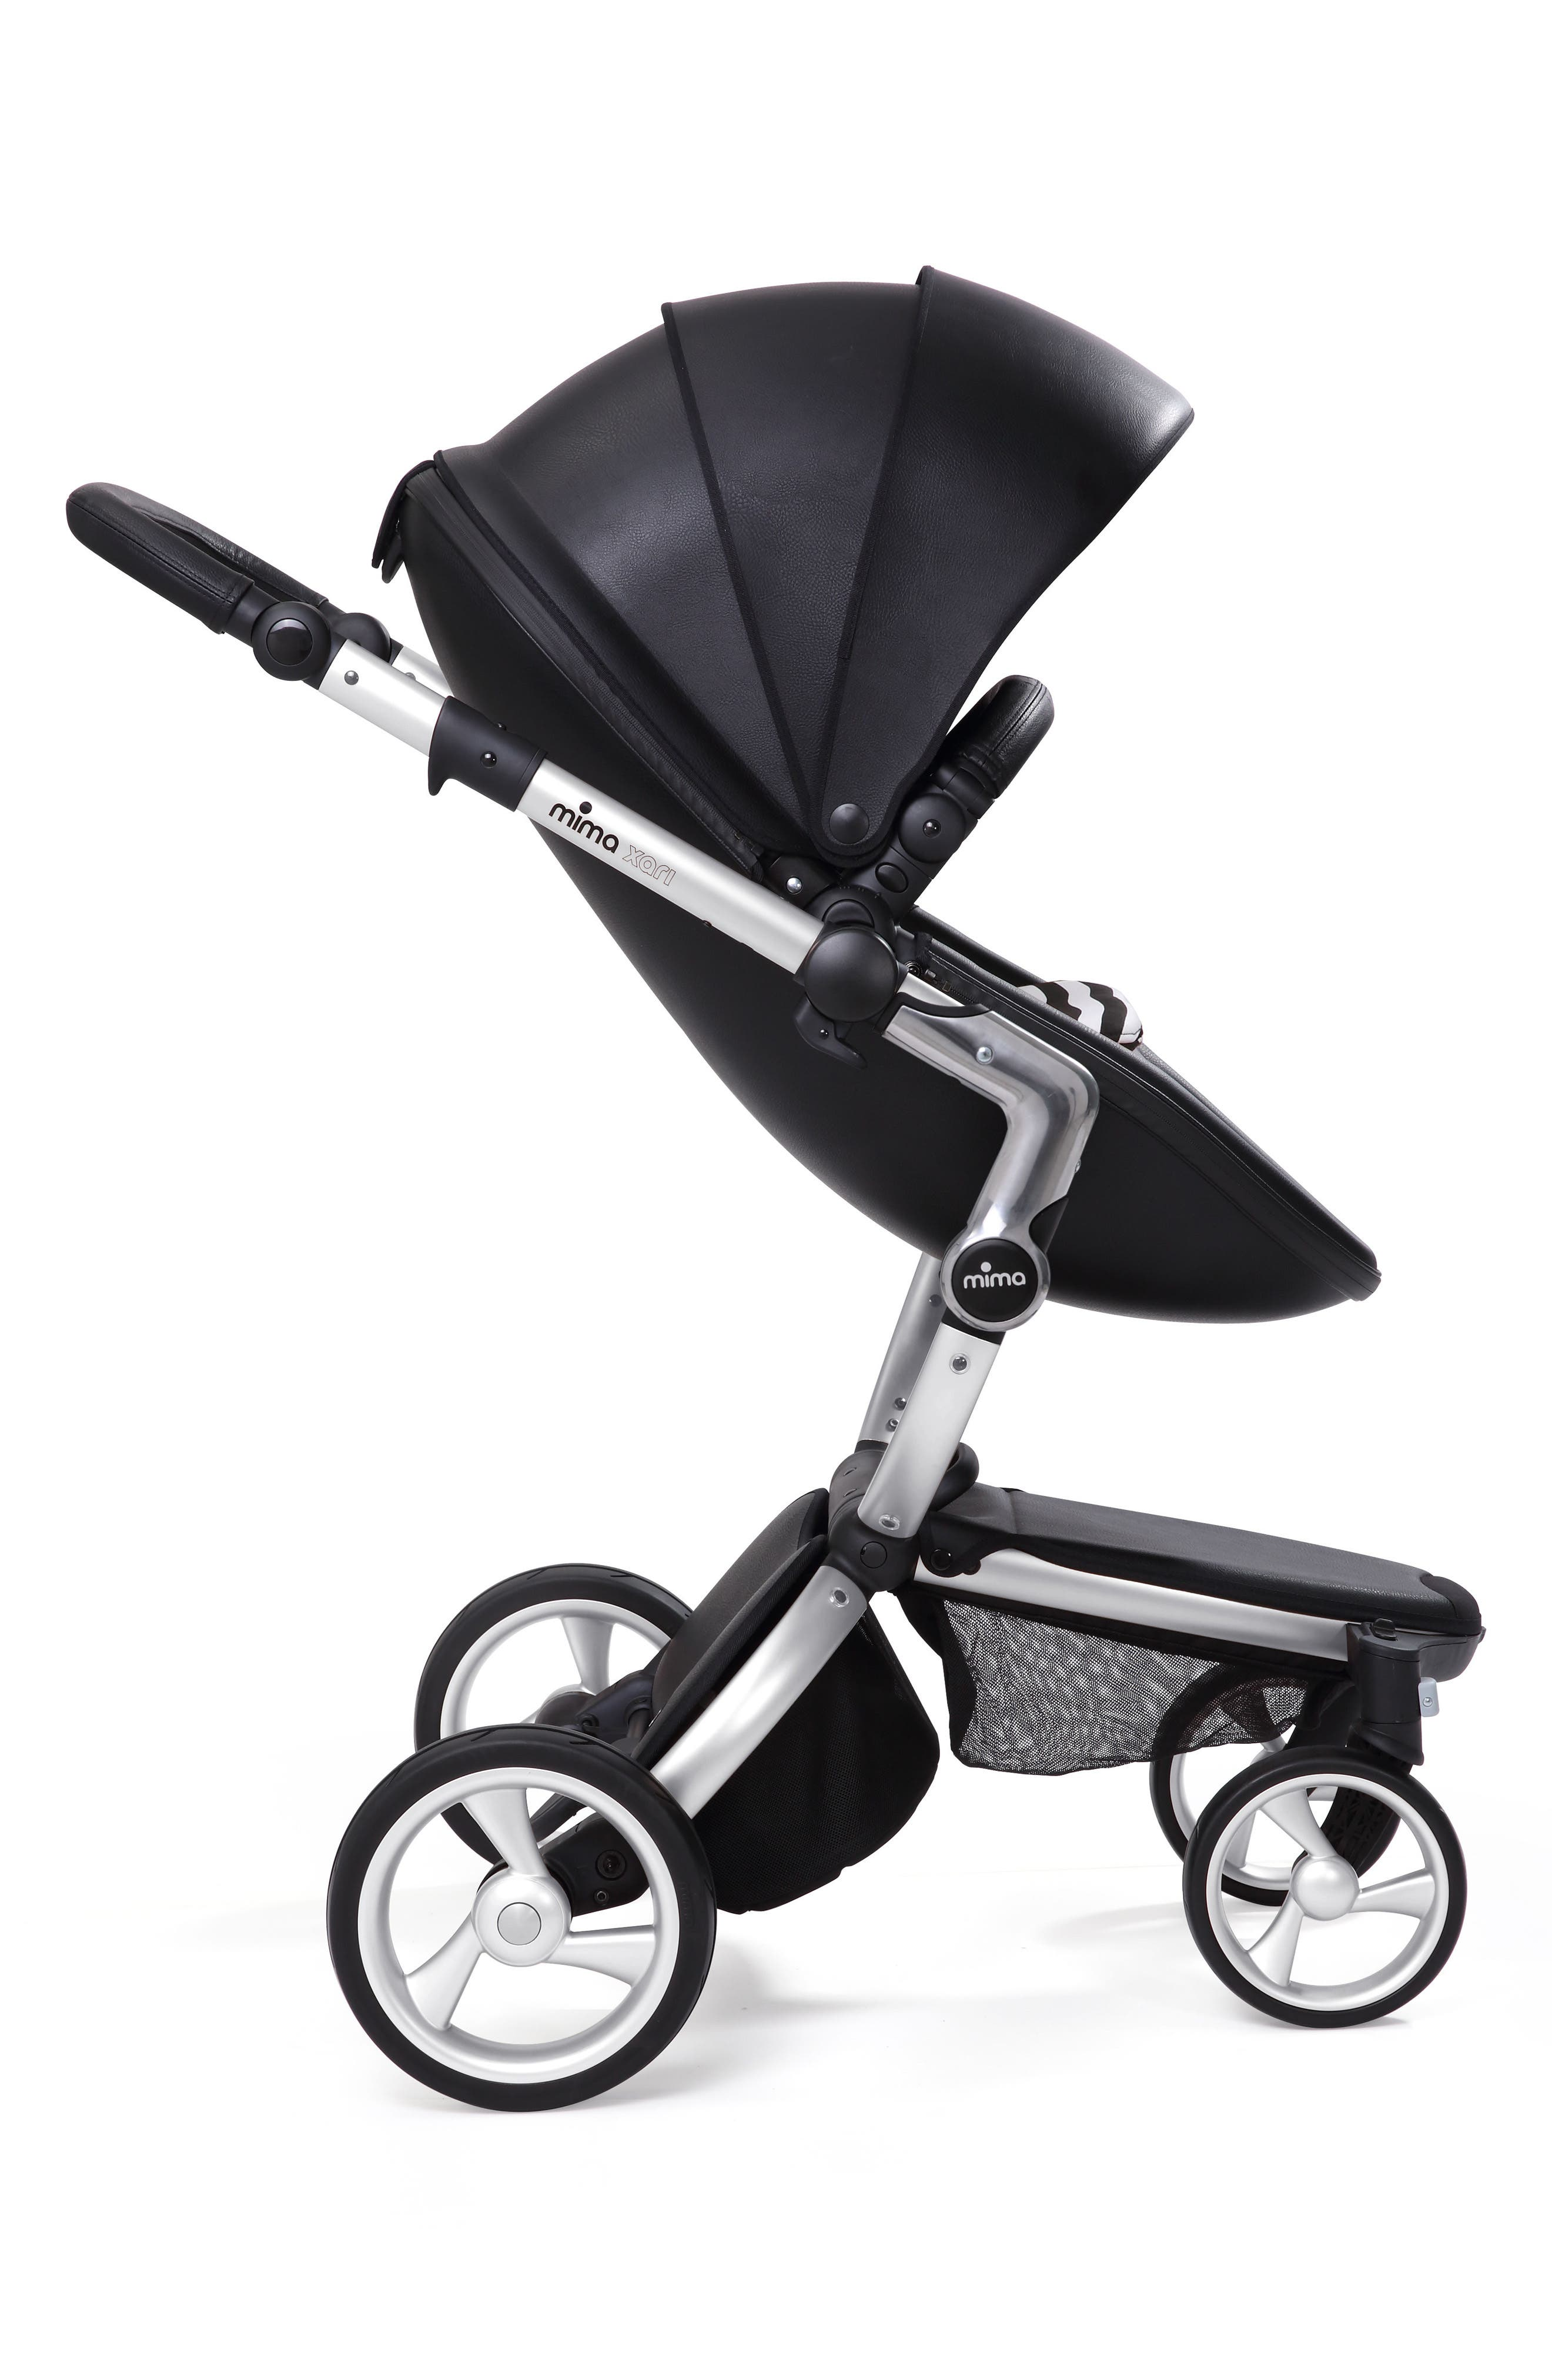 Xari Aluminum Chassis Stroller with Reversible Reclining Seat & Carrycot,                             Alternate thumbnail 3, color,                             BLACK / BLACK AND WHITE